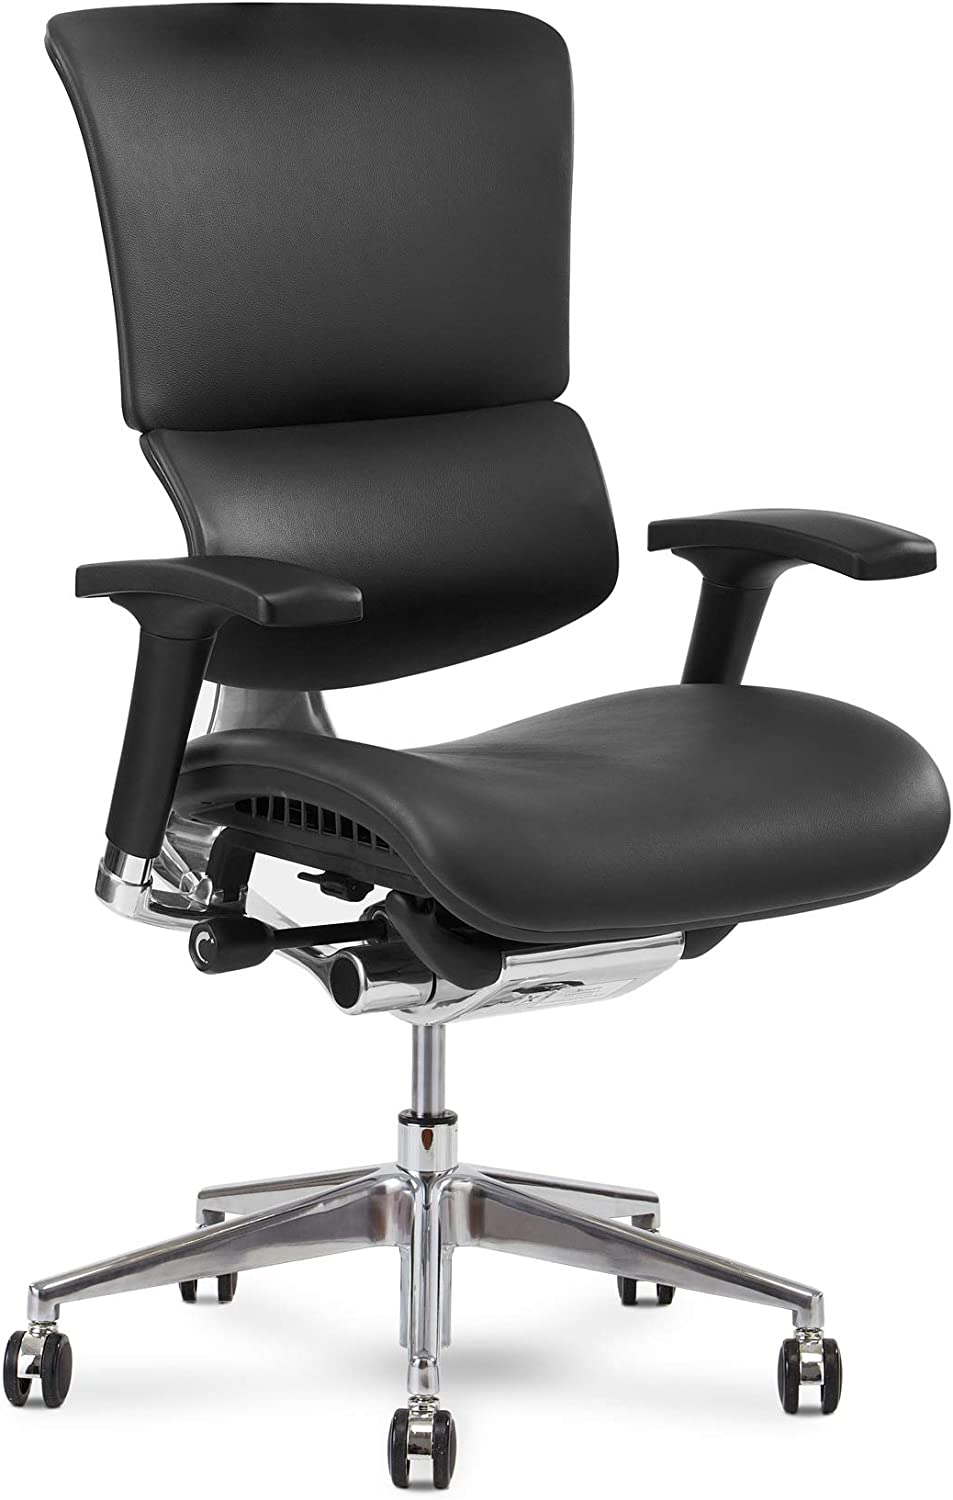 X Chair Office Desk Chair (X4 Black Leather Wide) Ergonomic Lumbar Support Task Chair Breathable Mesh, Adjustable Arms, Executive, Drafting, Gaming Computer Home or Office Chair